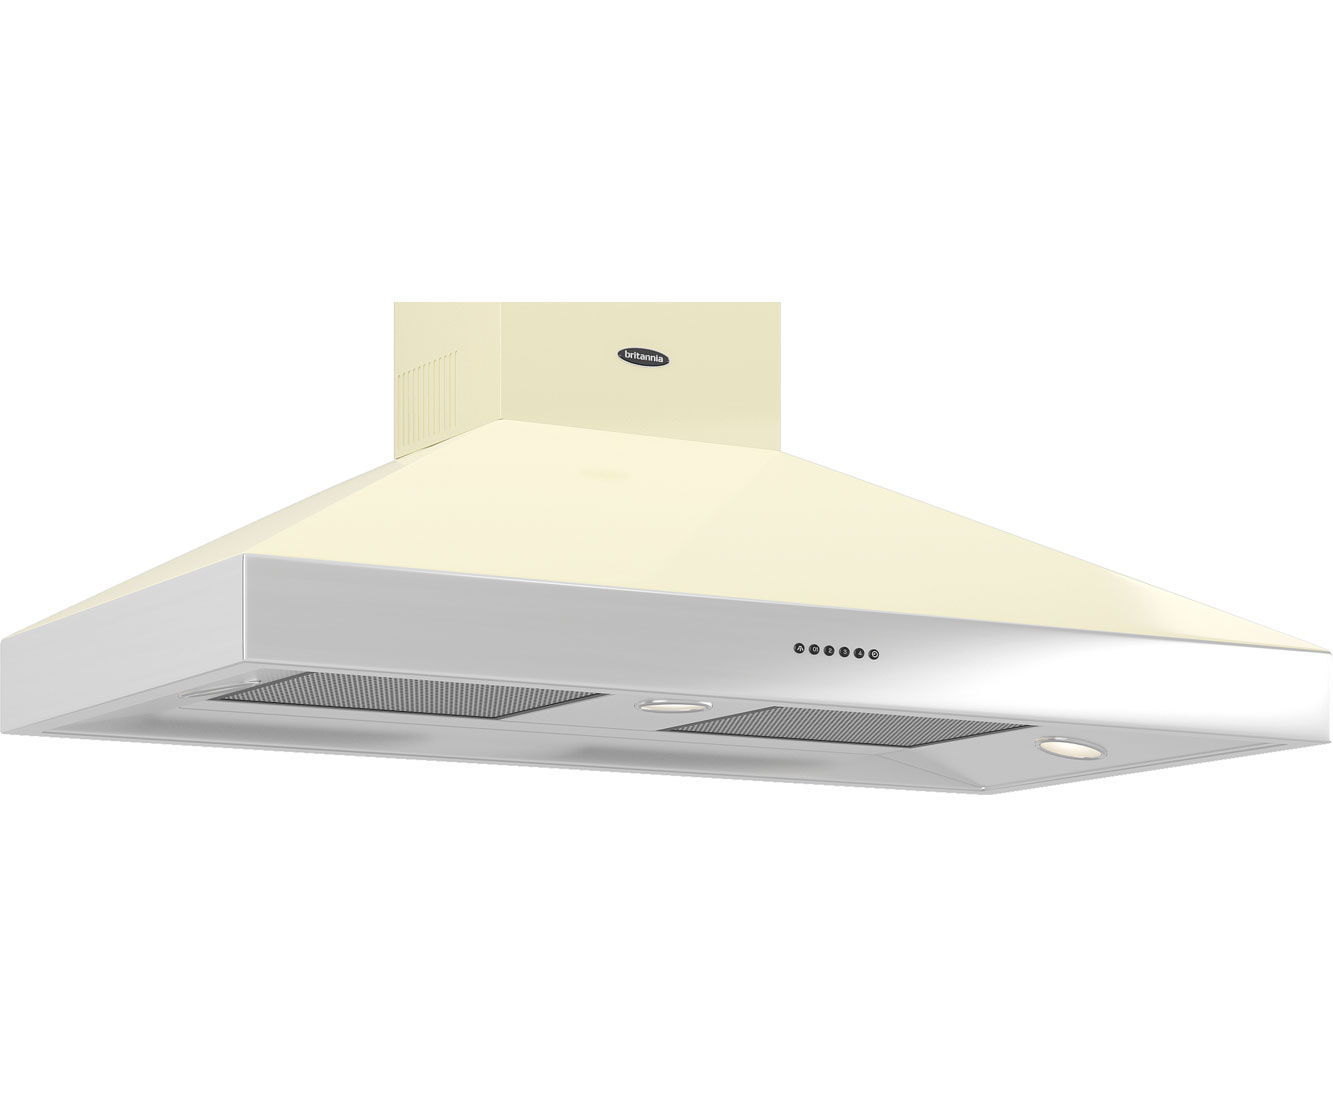 Britannia Latour HOODBTH110GC Integrated Cooker Hood in Gloss Cream